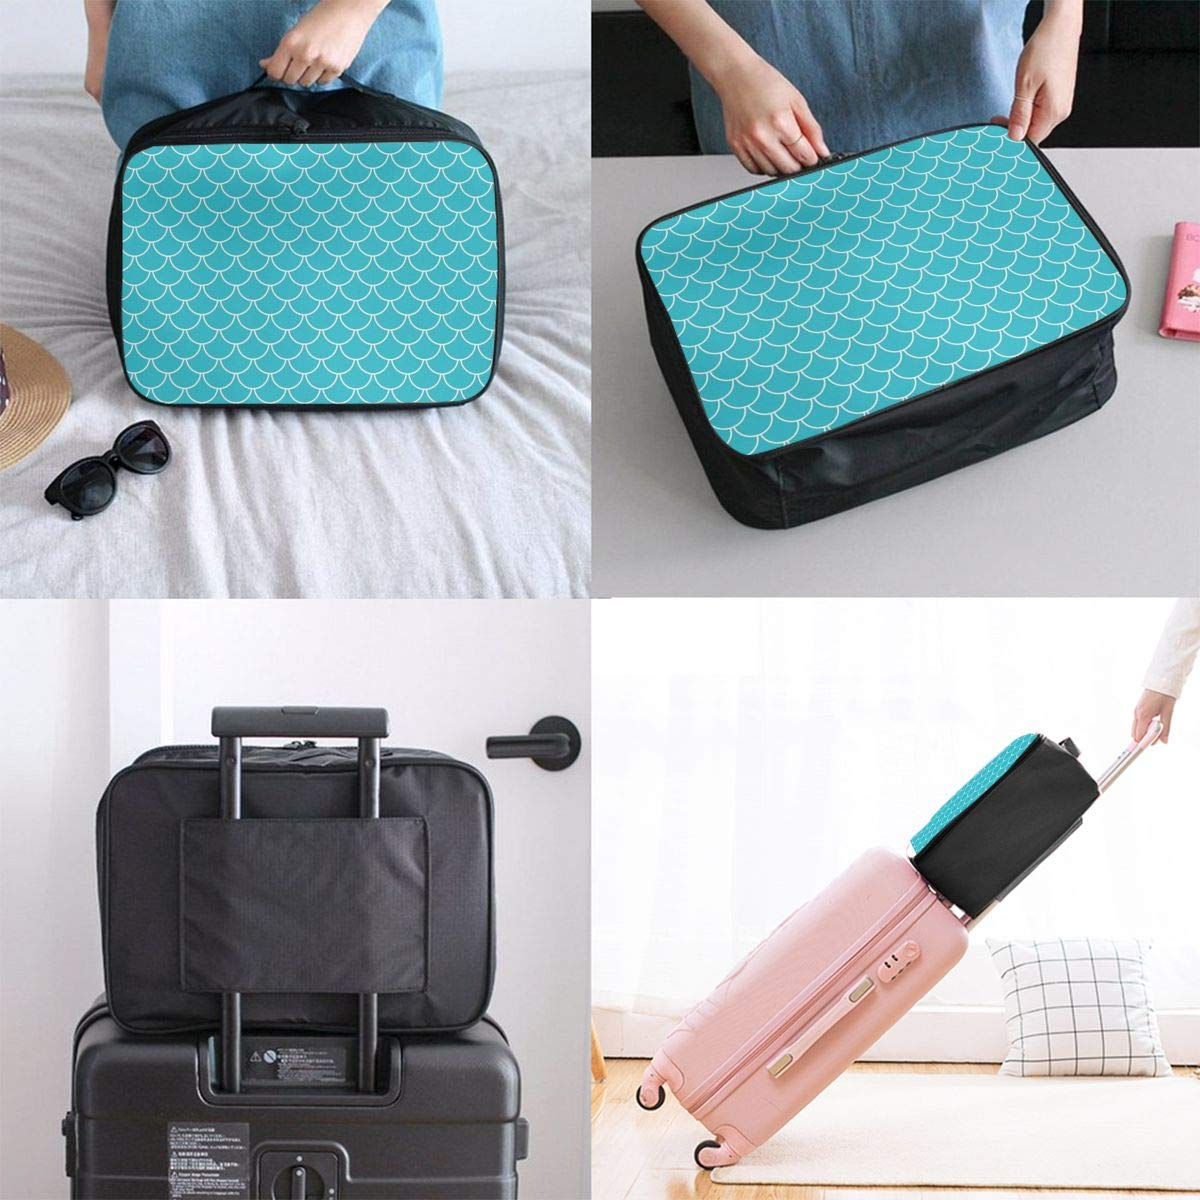 Travel Duffel Bag Waterproof Fashion Lightweight Large Capacity Portable Luggage Bag Teal Blue Mermaid Scales